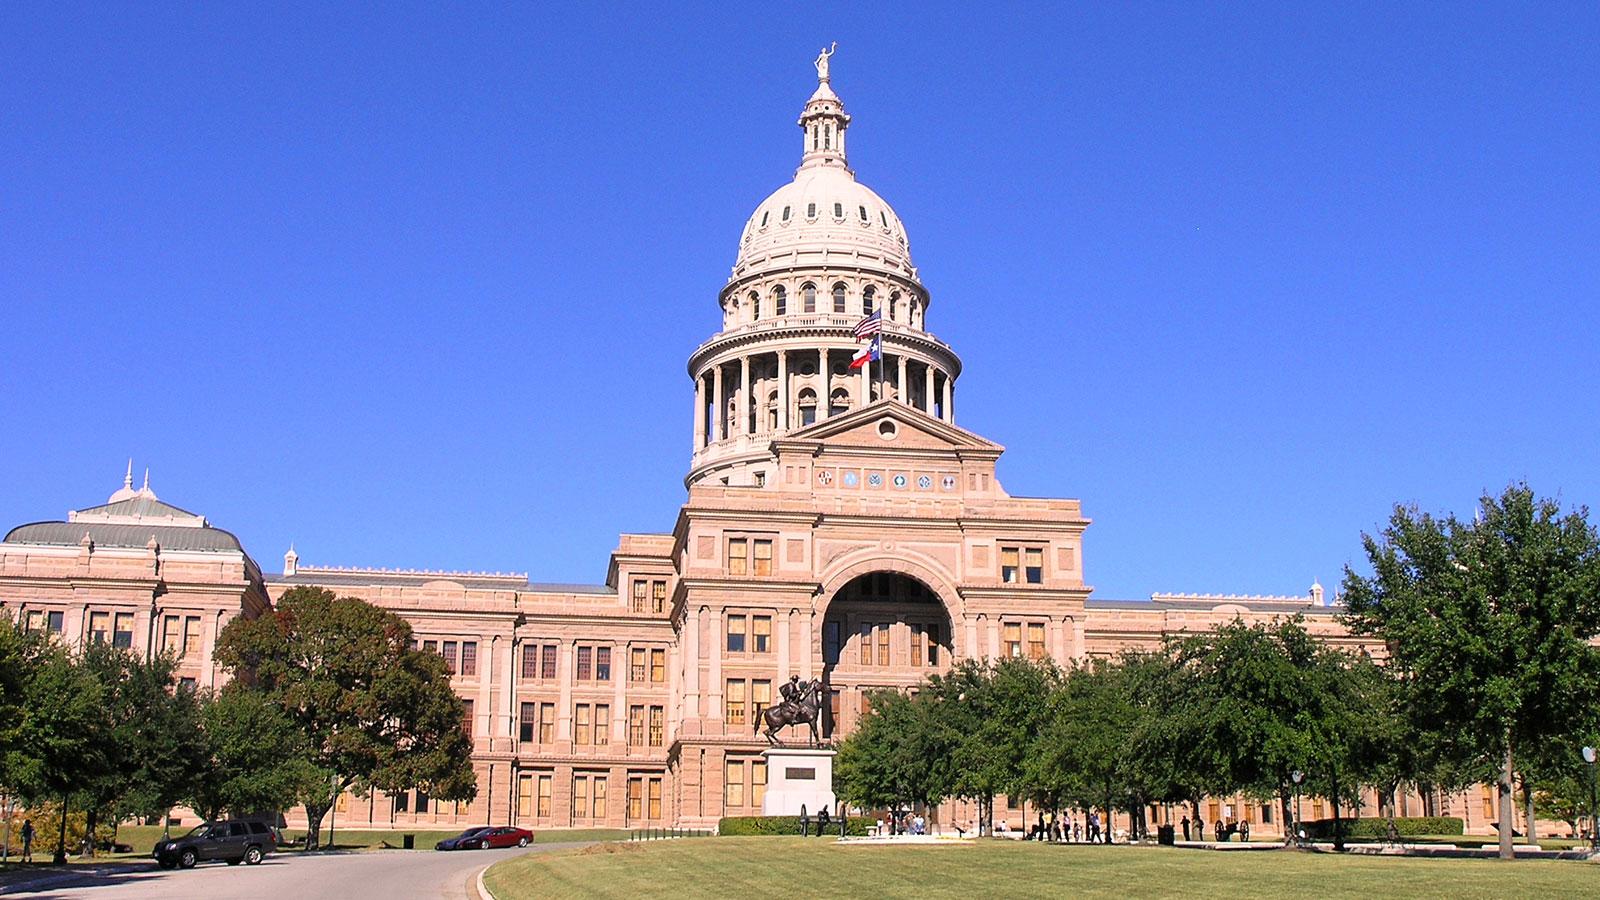 Texans: Ask Governor Abbott to Veto HB 3859 and SB 2078